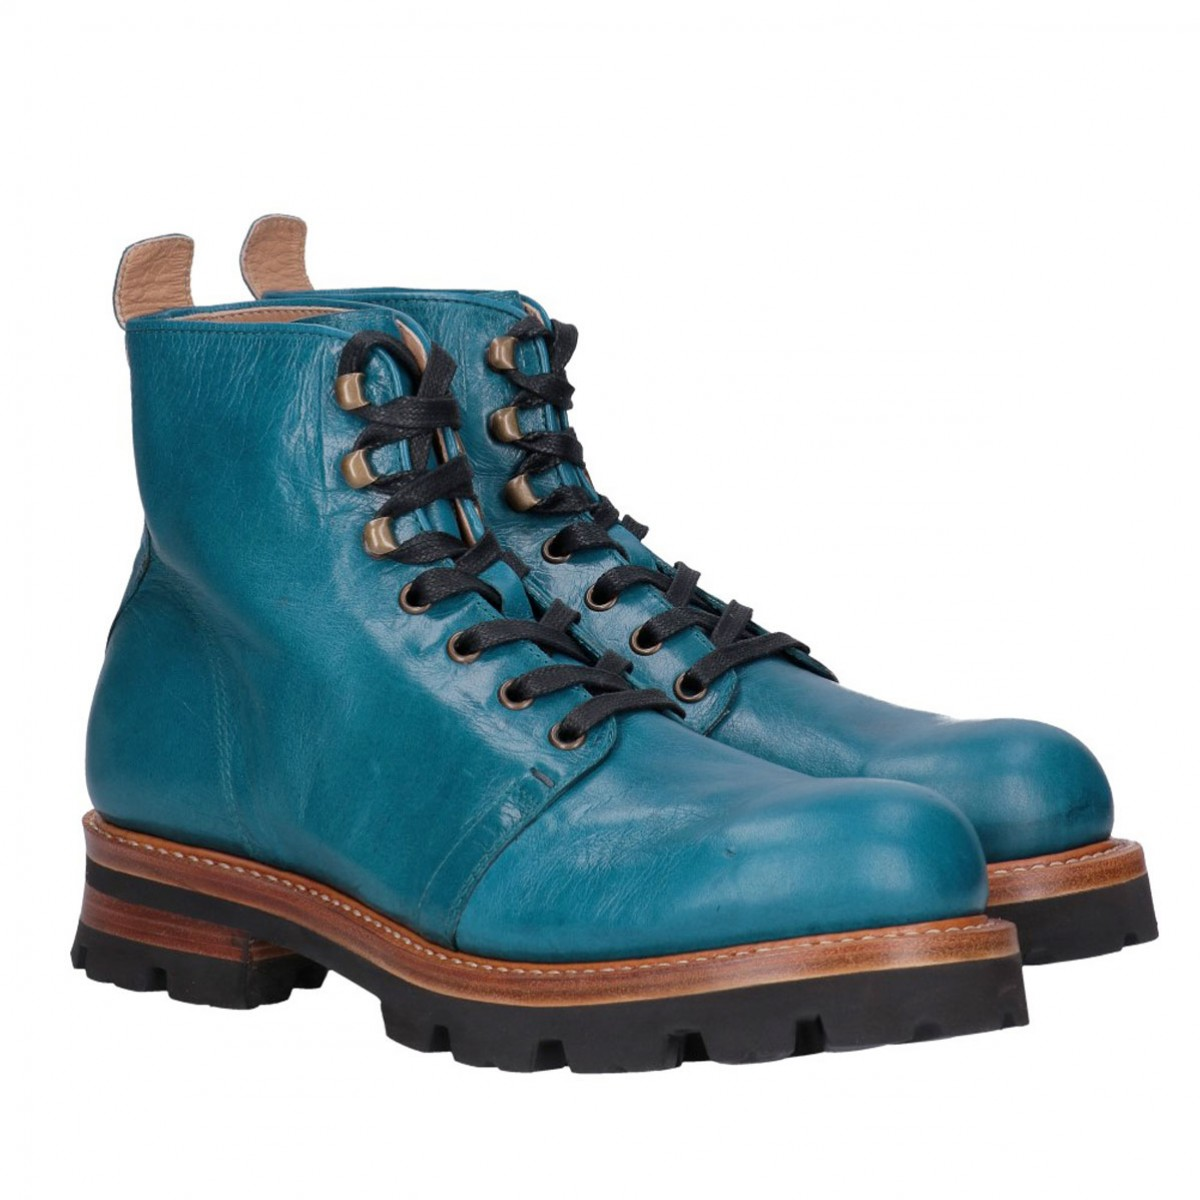 Cappelletti mid boot laces donna